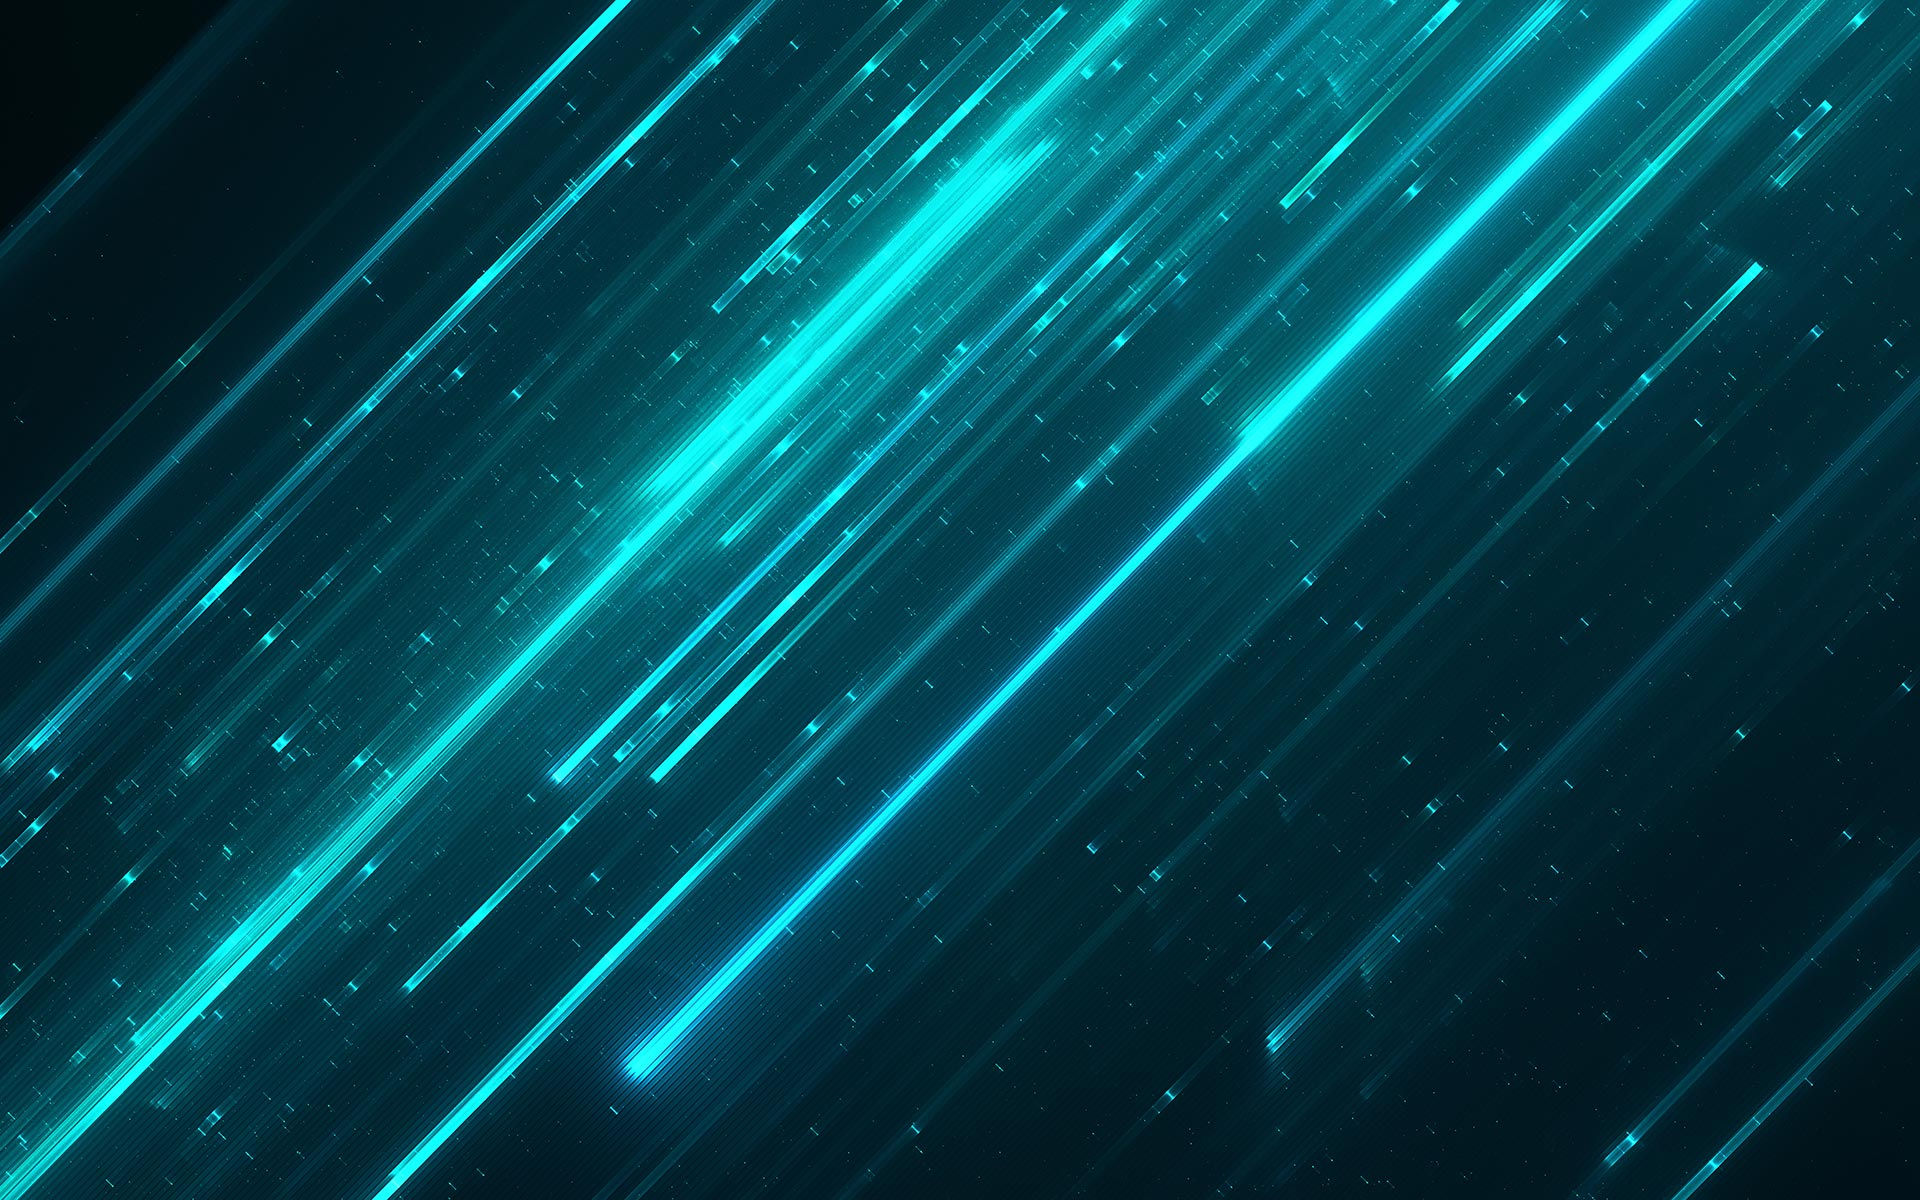 Abstract Wallpapers 8